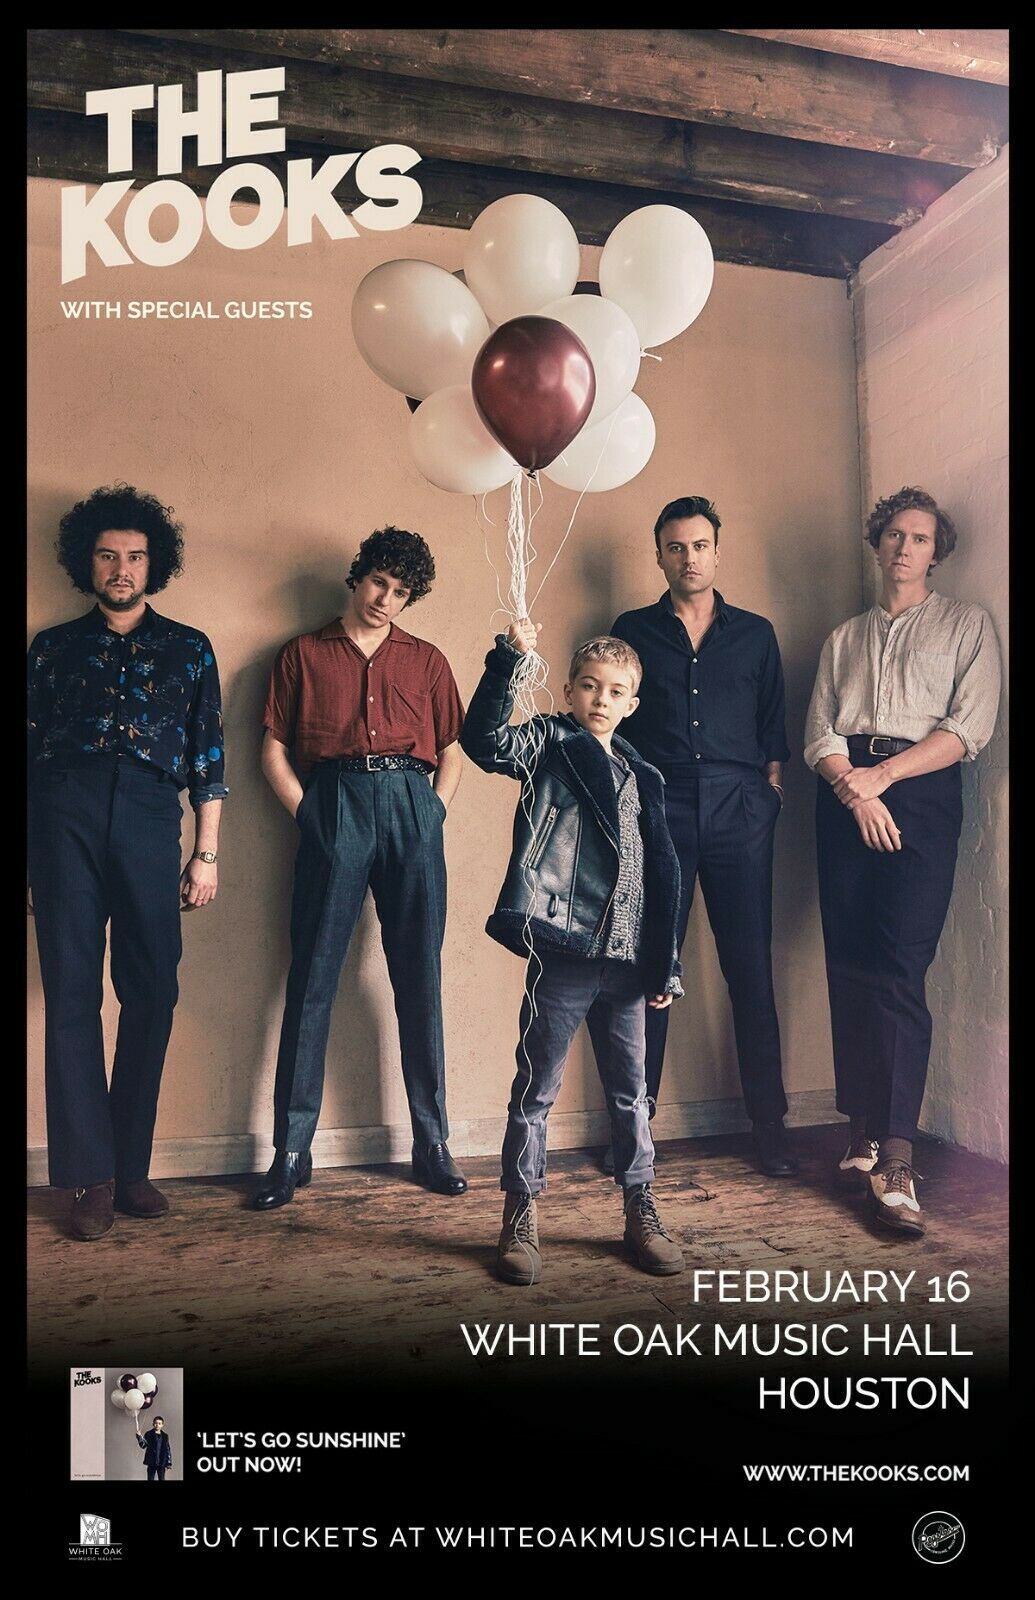 THE KOOKS LET S GO SUNSHINE 2019 HOUSTON CONCERT TOUR POSTER- Indie Rock Music - $10.99